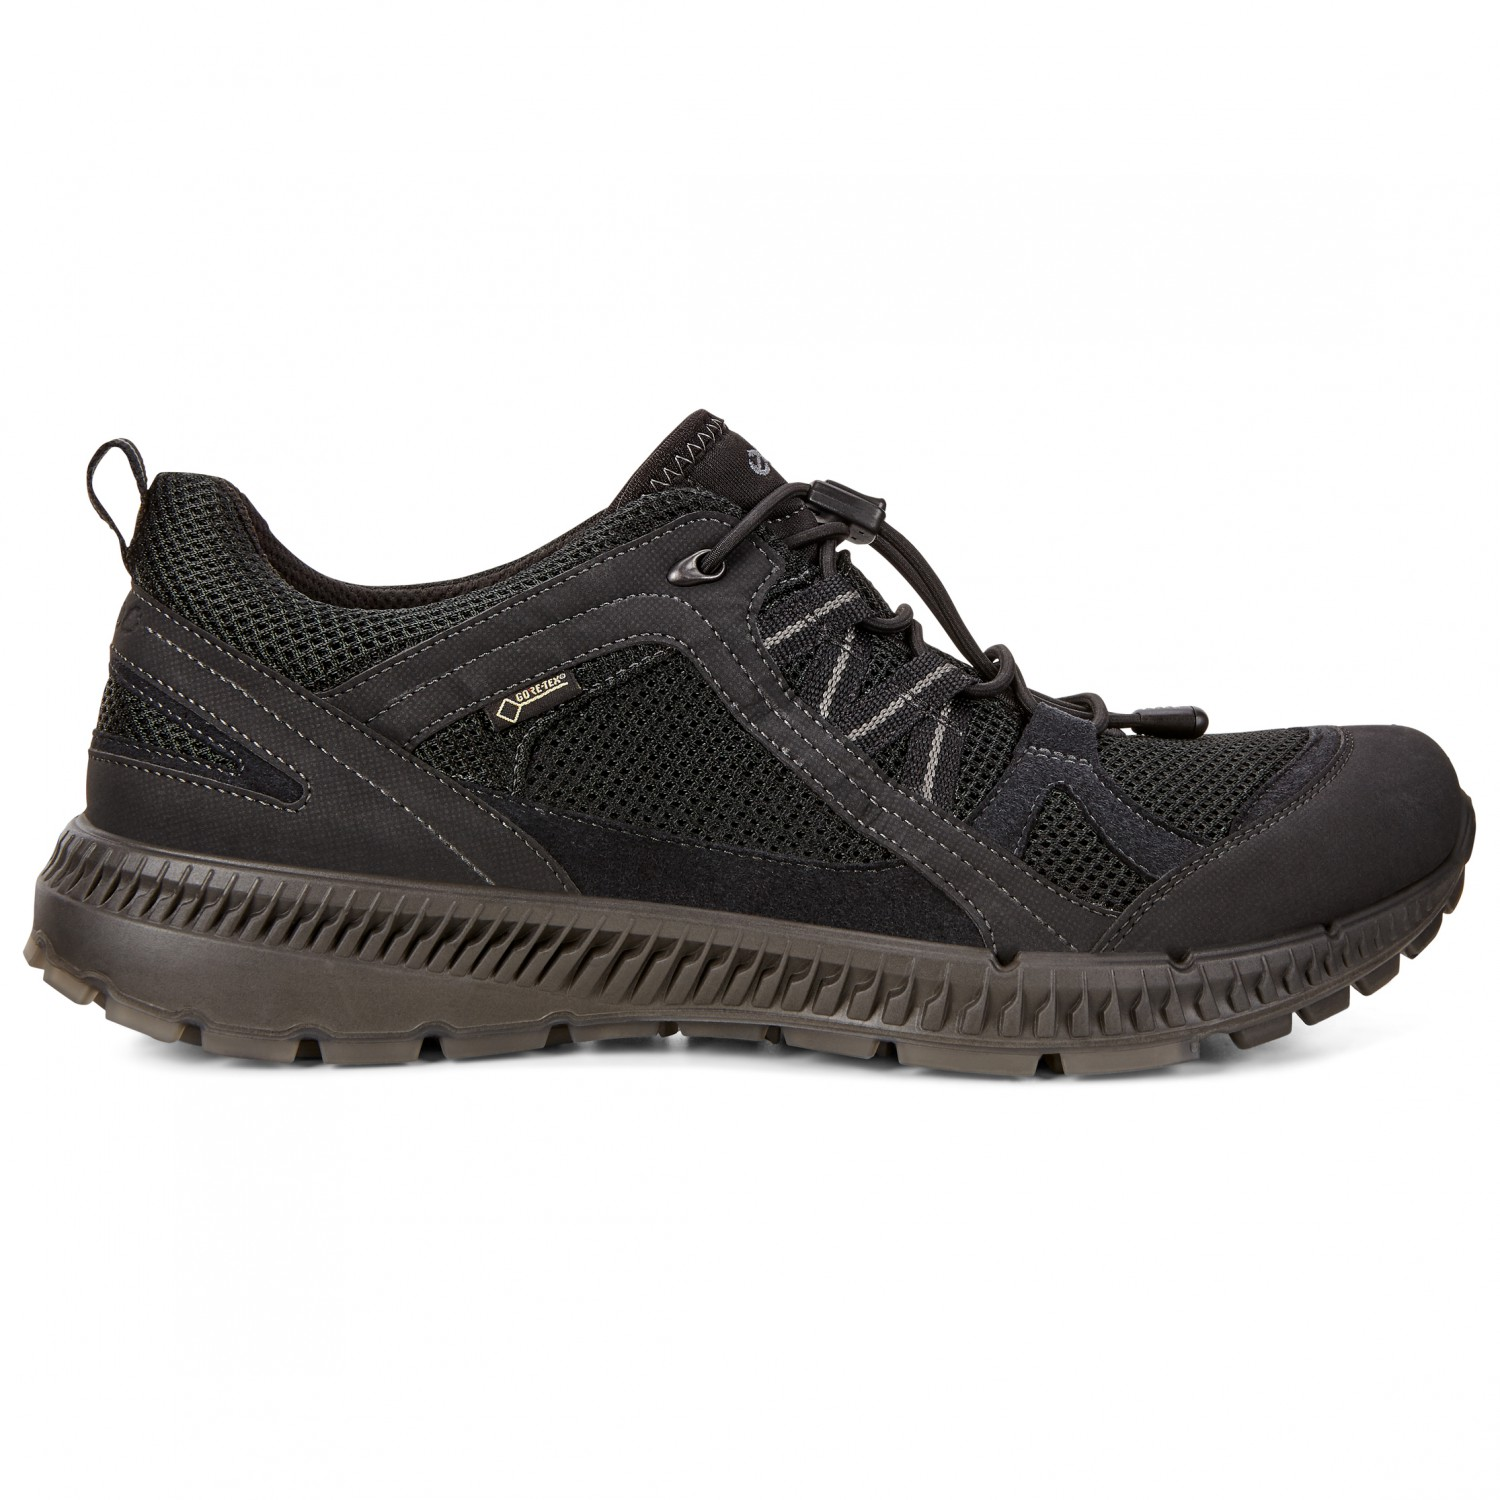 Ecco Terracruise II GTX Multisport shoes Black Titanium | 40 (EU)